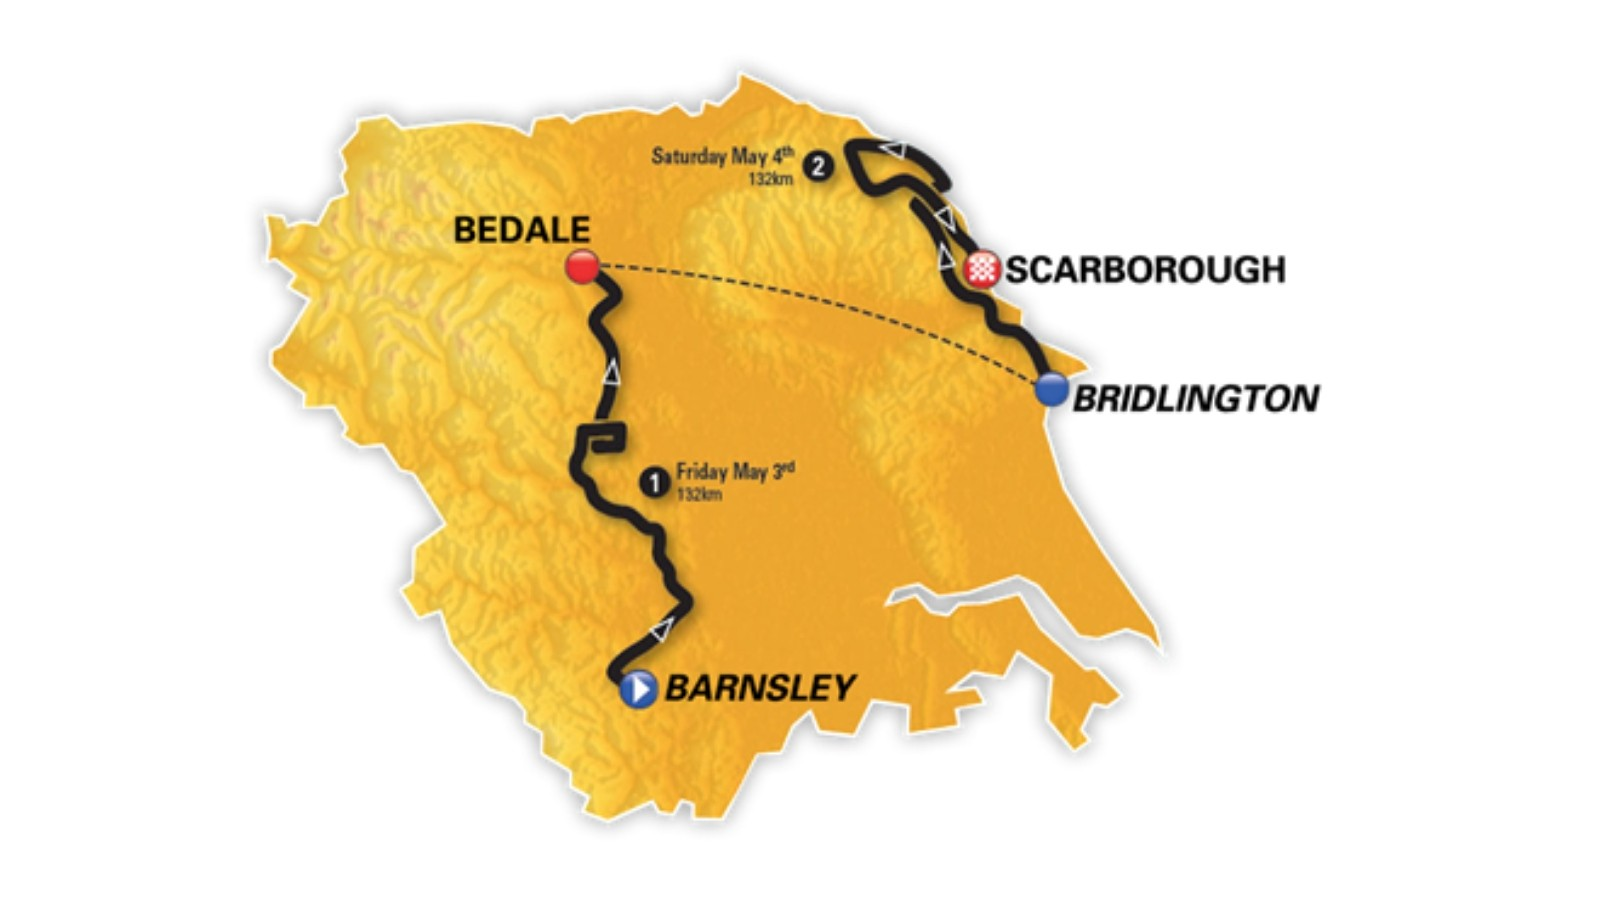 The Asda Tour de Yorkshire Women's Race covers 264km and shares two stages with the men's race